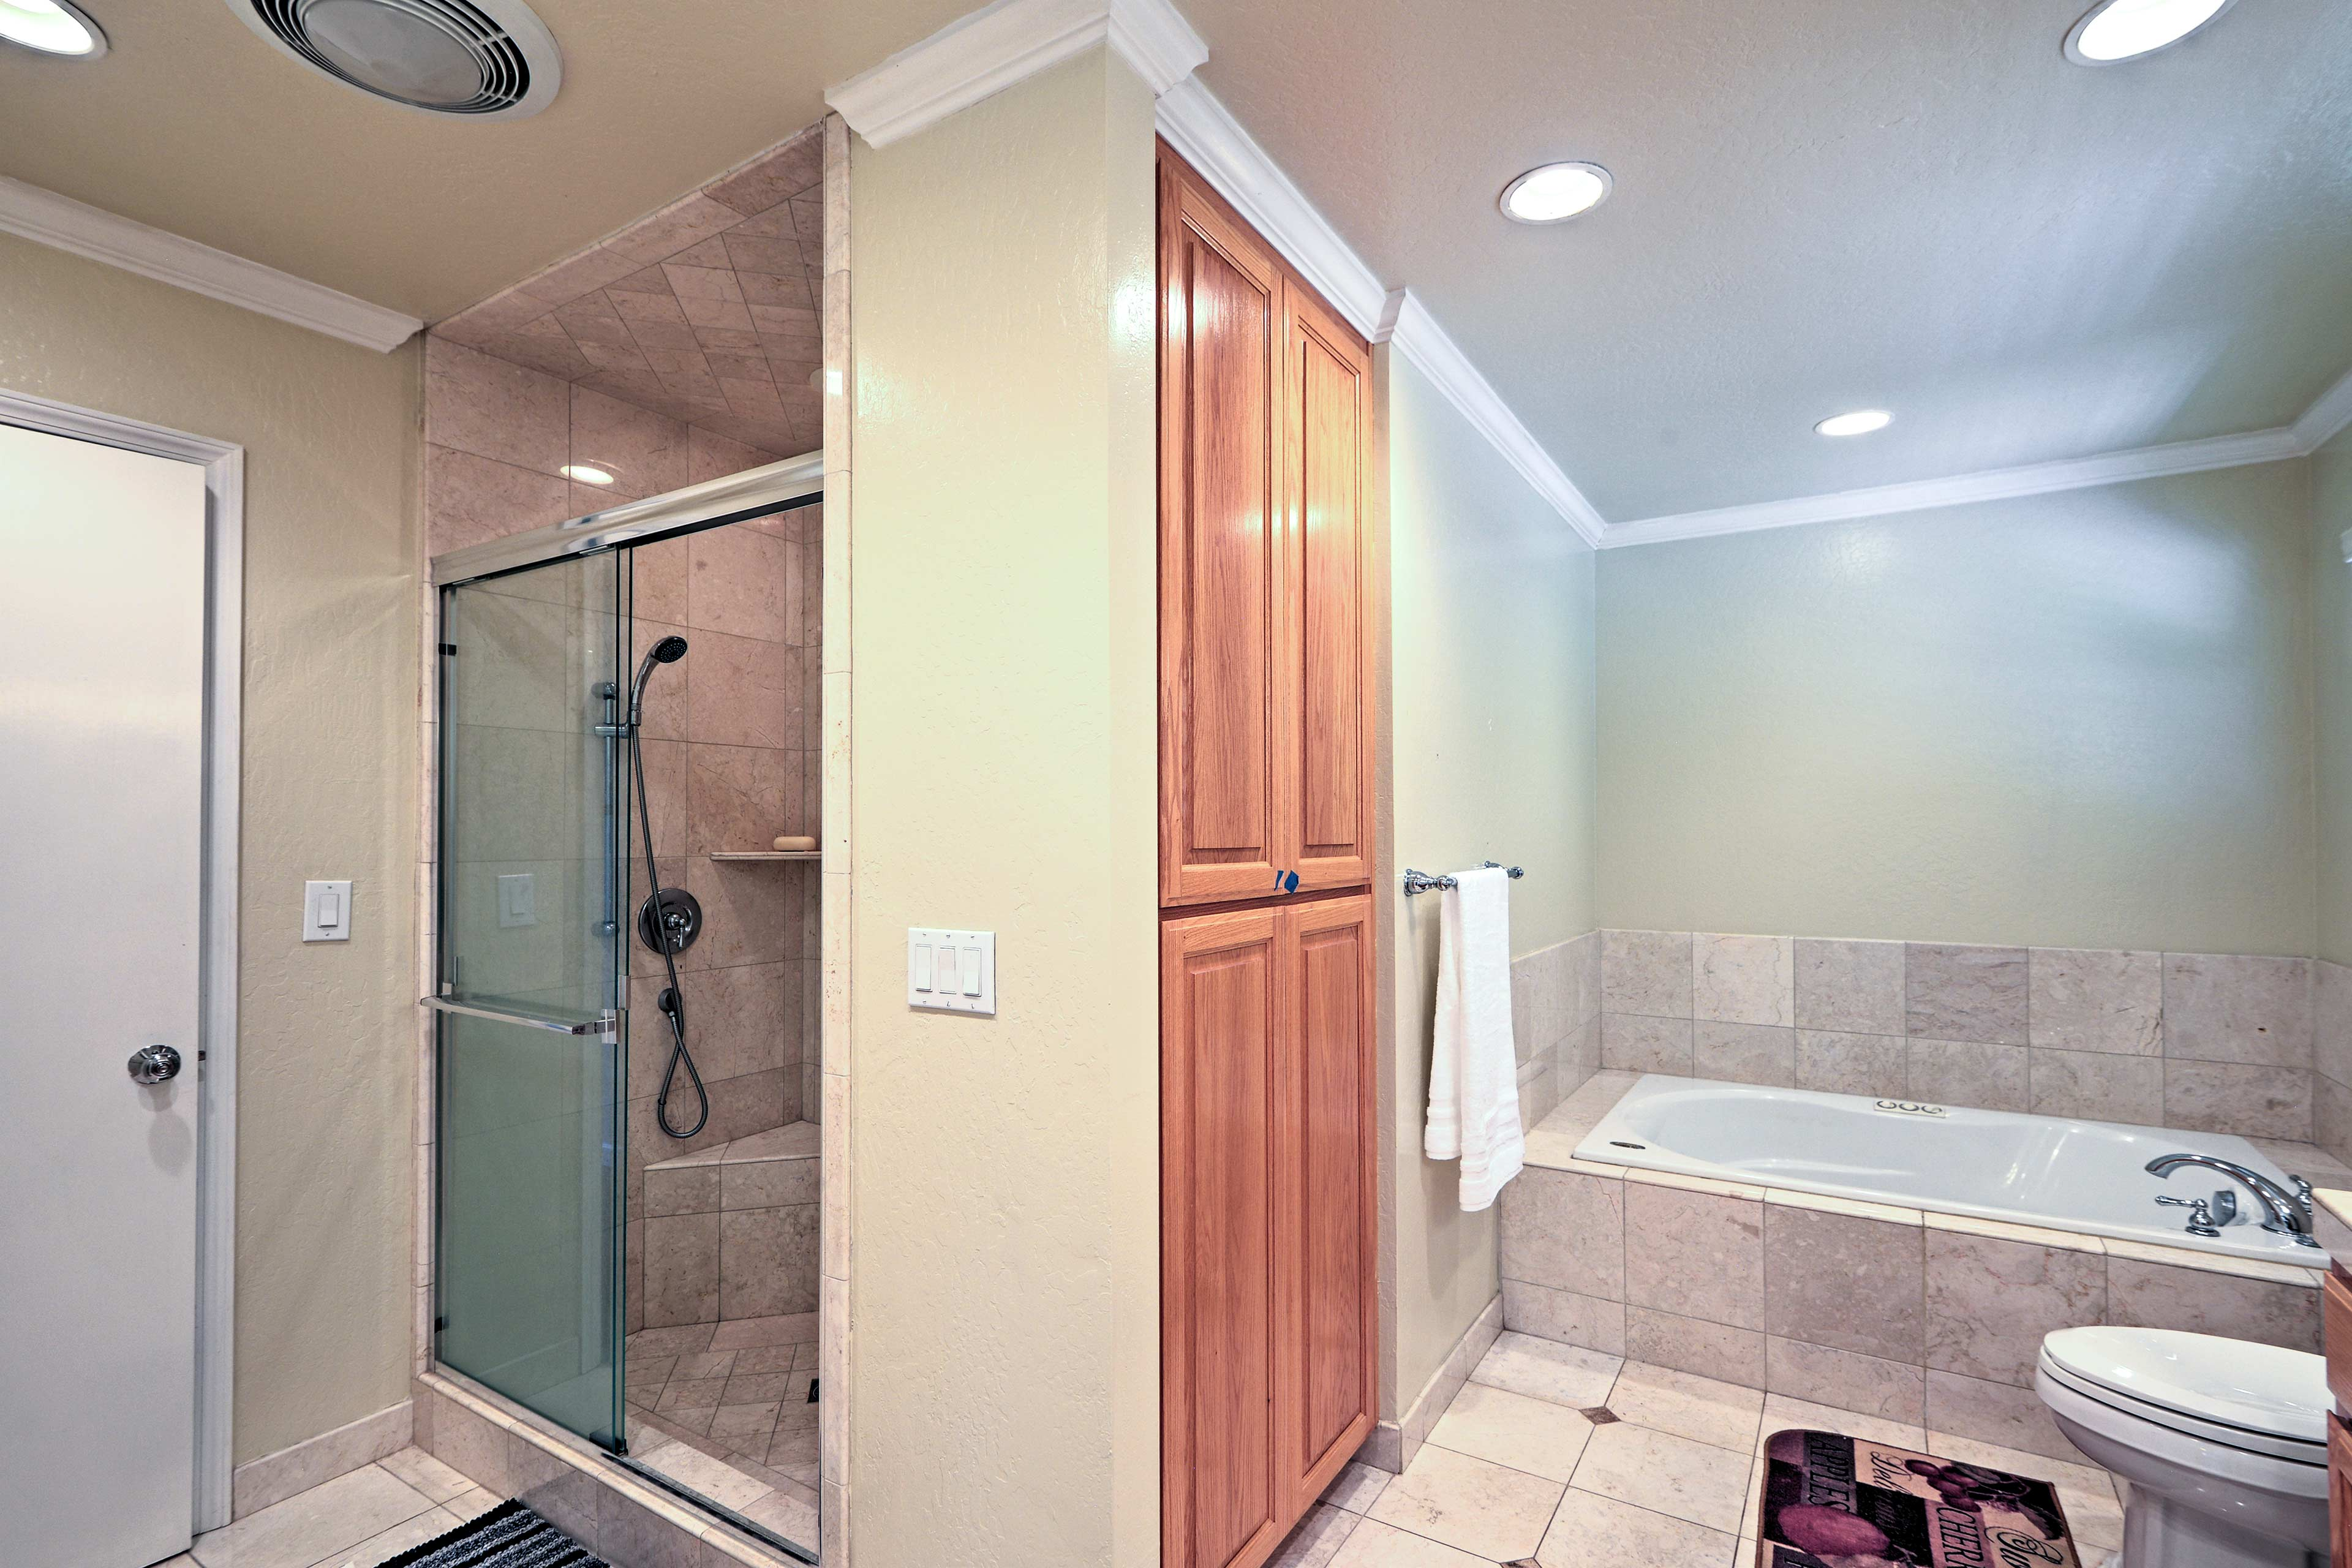 The master en-suite bathroom also features a walk-in shower.